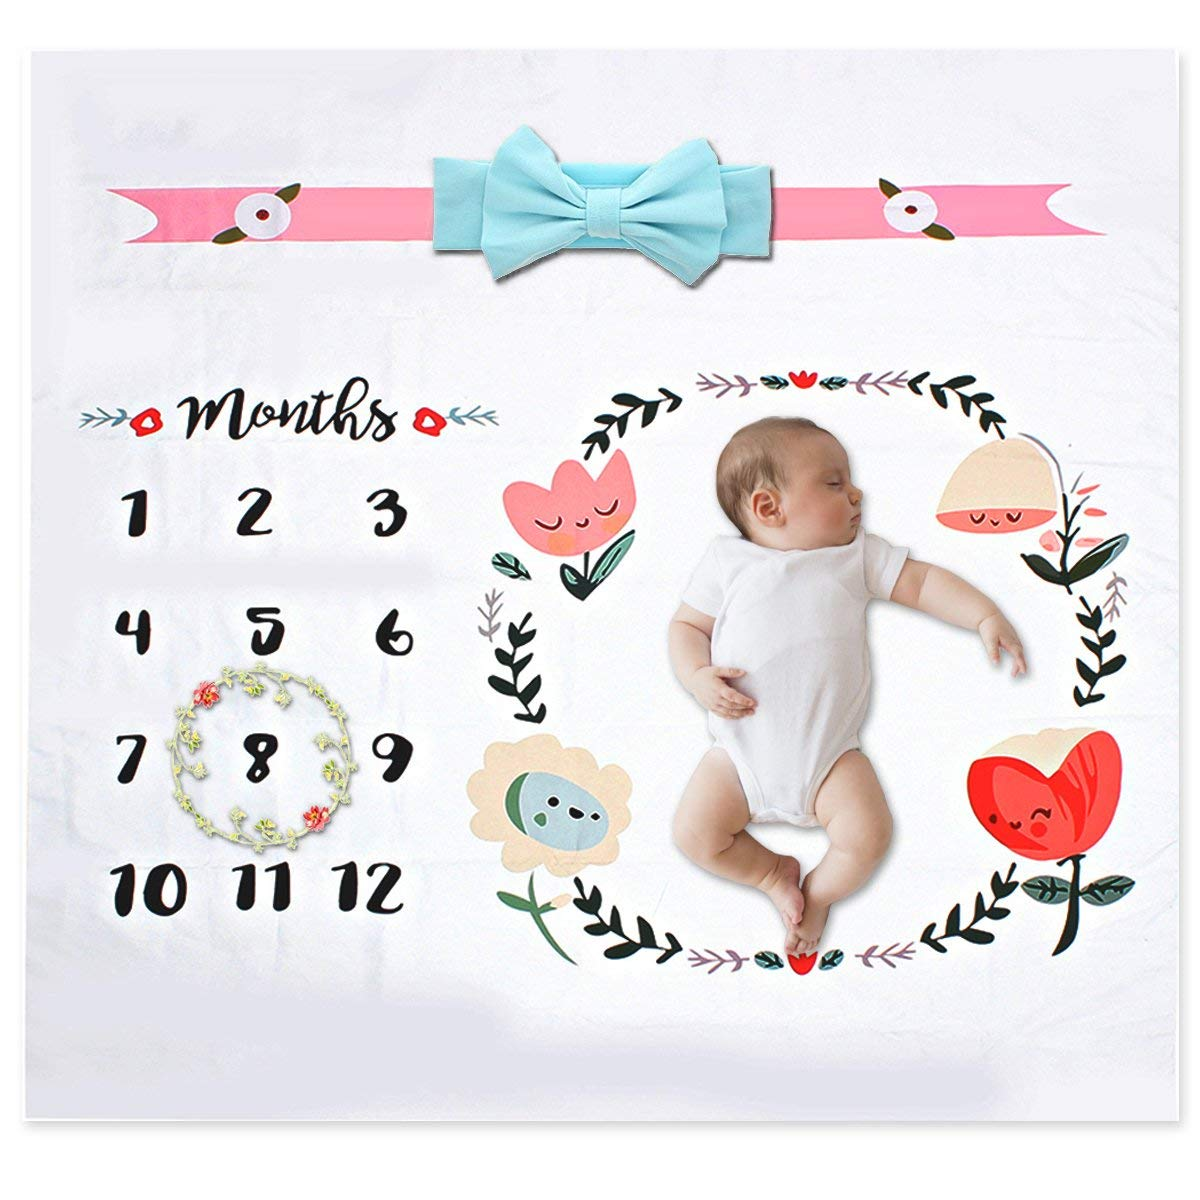 FunSponsor Baby Monthly Milestone Blanket 40x40, Infant Photography Background Prop, Great for Unique DIY Newborn Baby Swaddling Blanket Photos (Bonus: Headband with Gift Pouch)